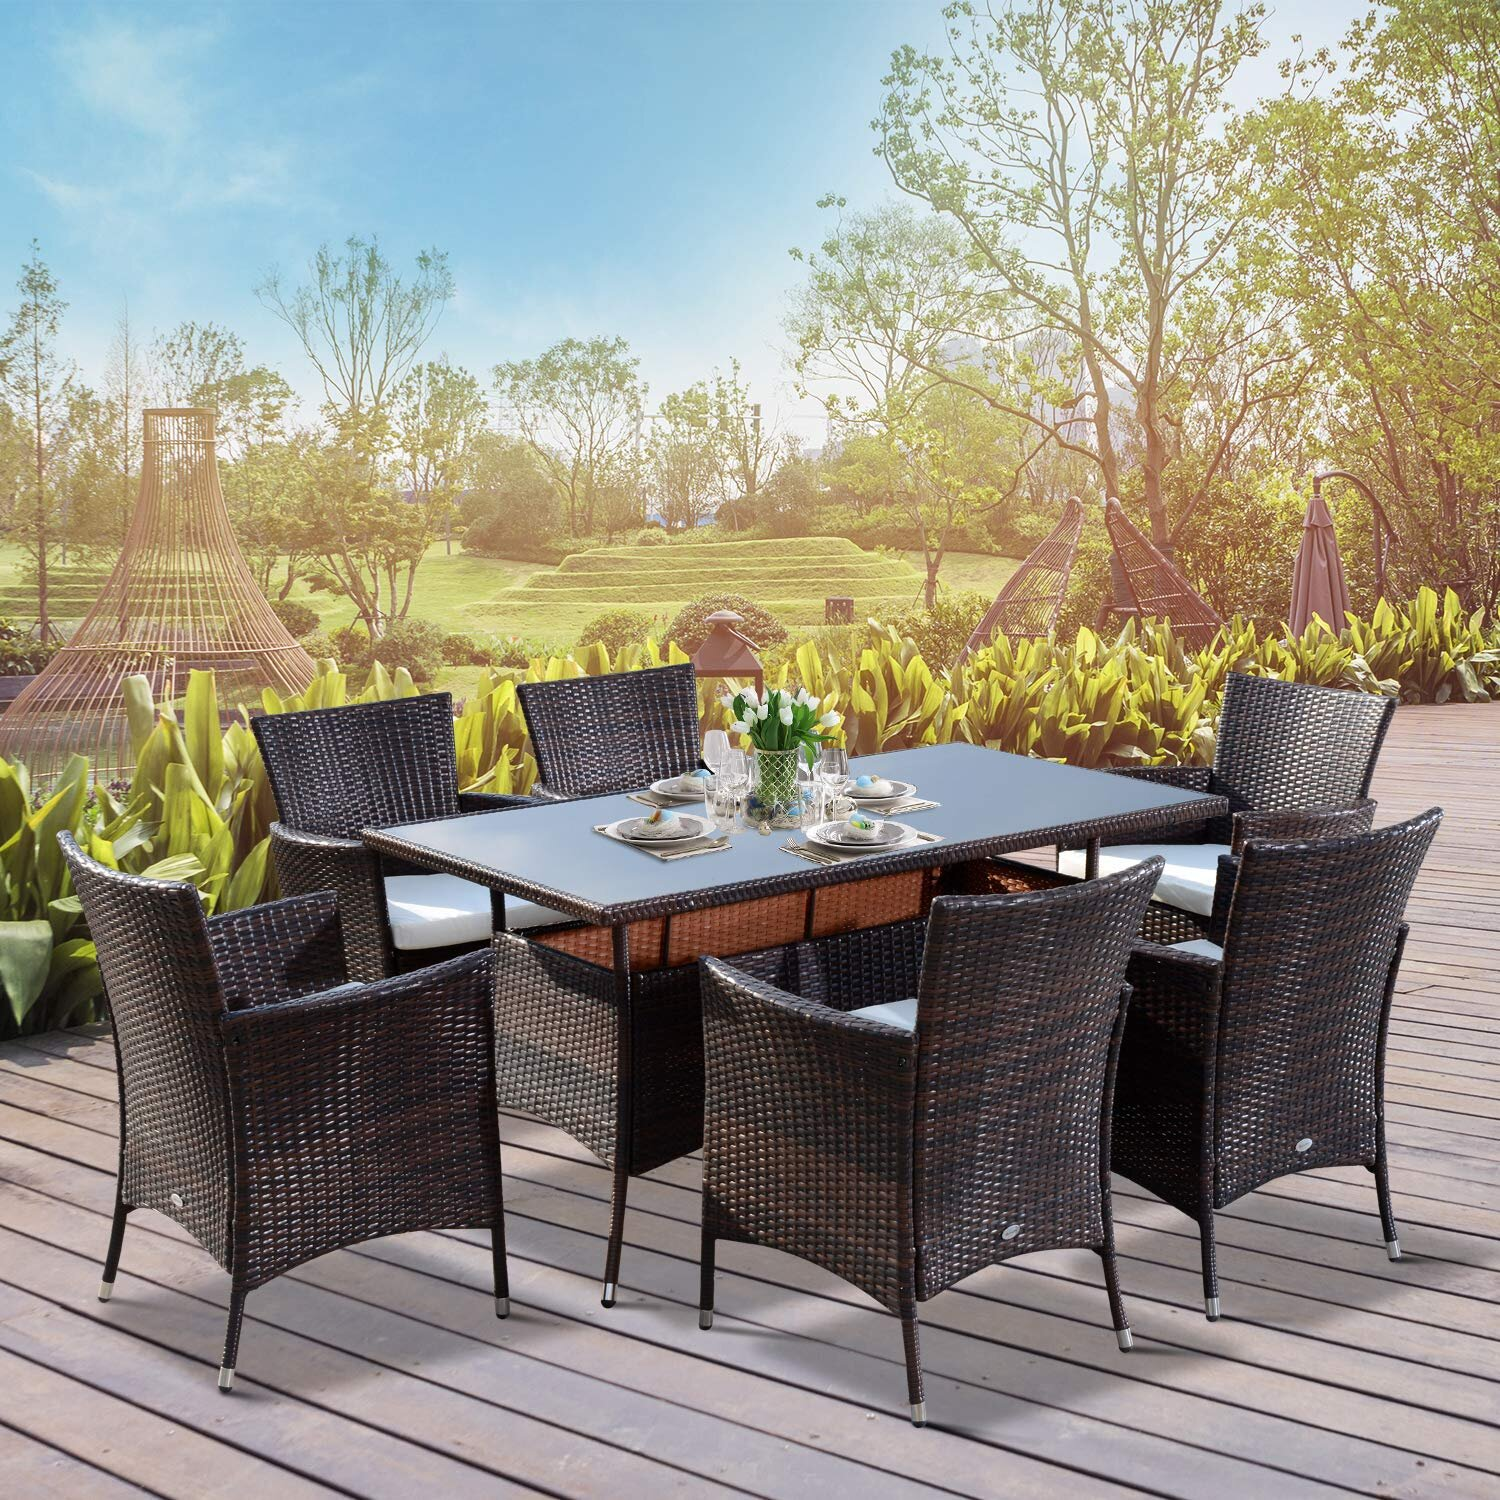 Garden Patio 6 or 8 Seater Dining Set Table Chairs Solid Pine Furniture Outdoor